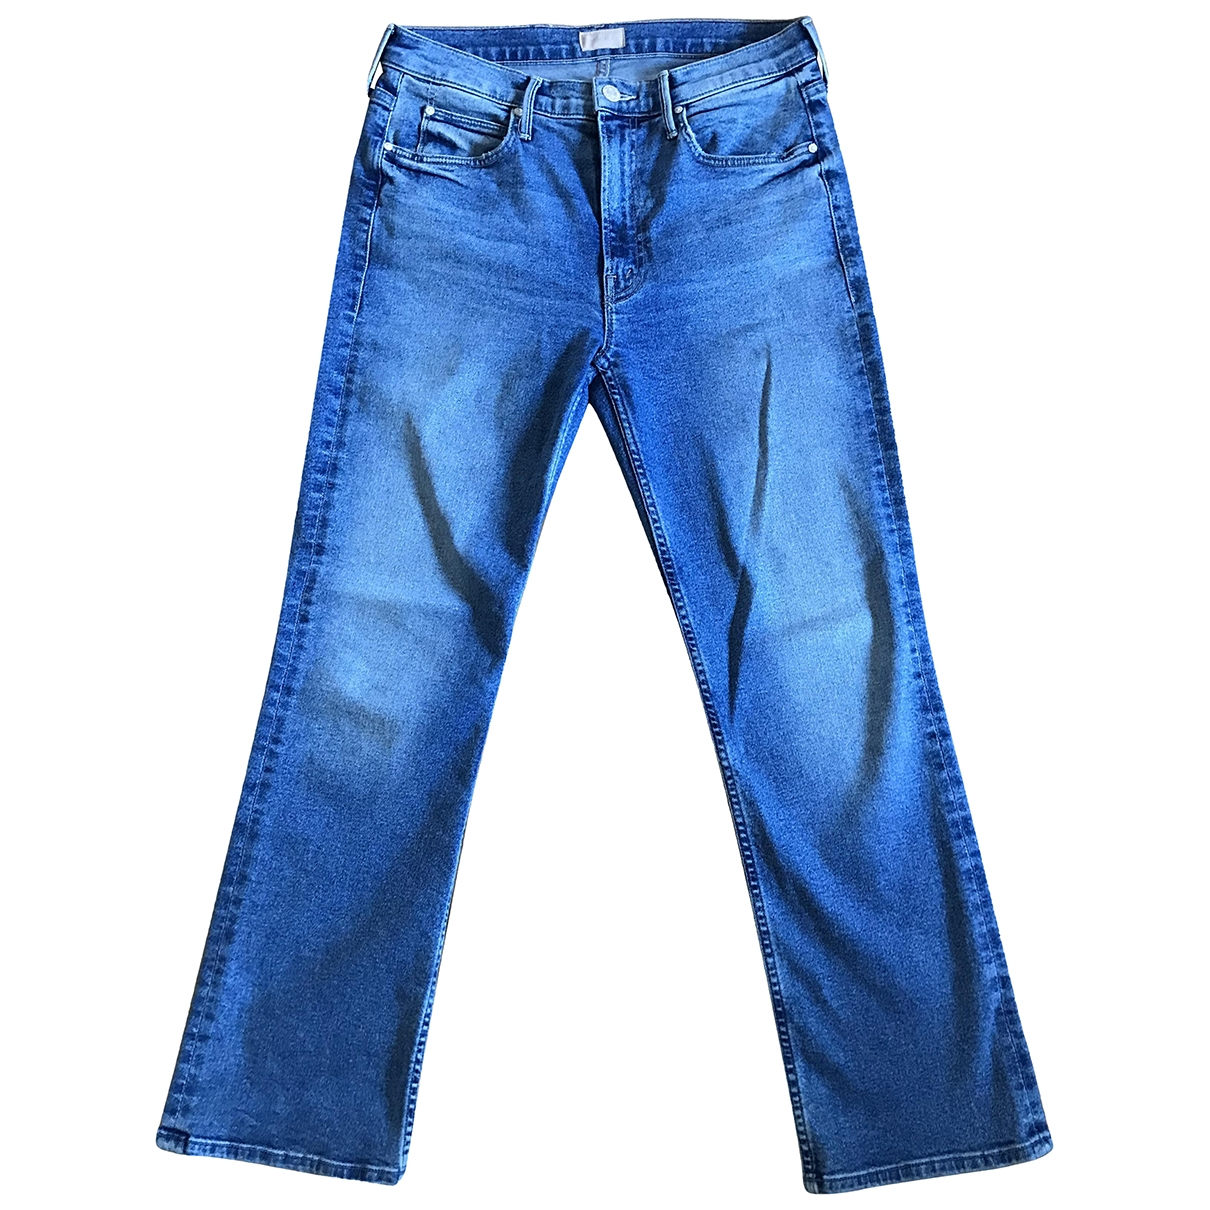 M\N Blue Cotton - elasthane Jeans for Women 27 US